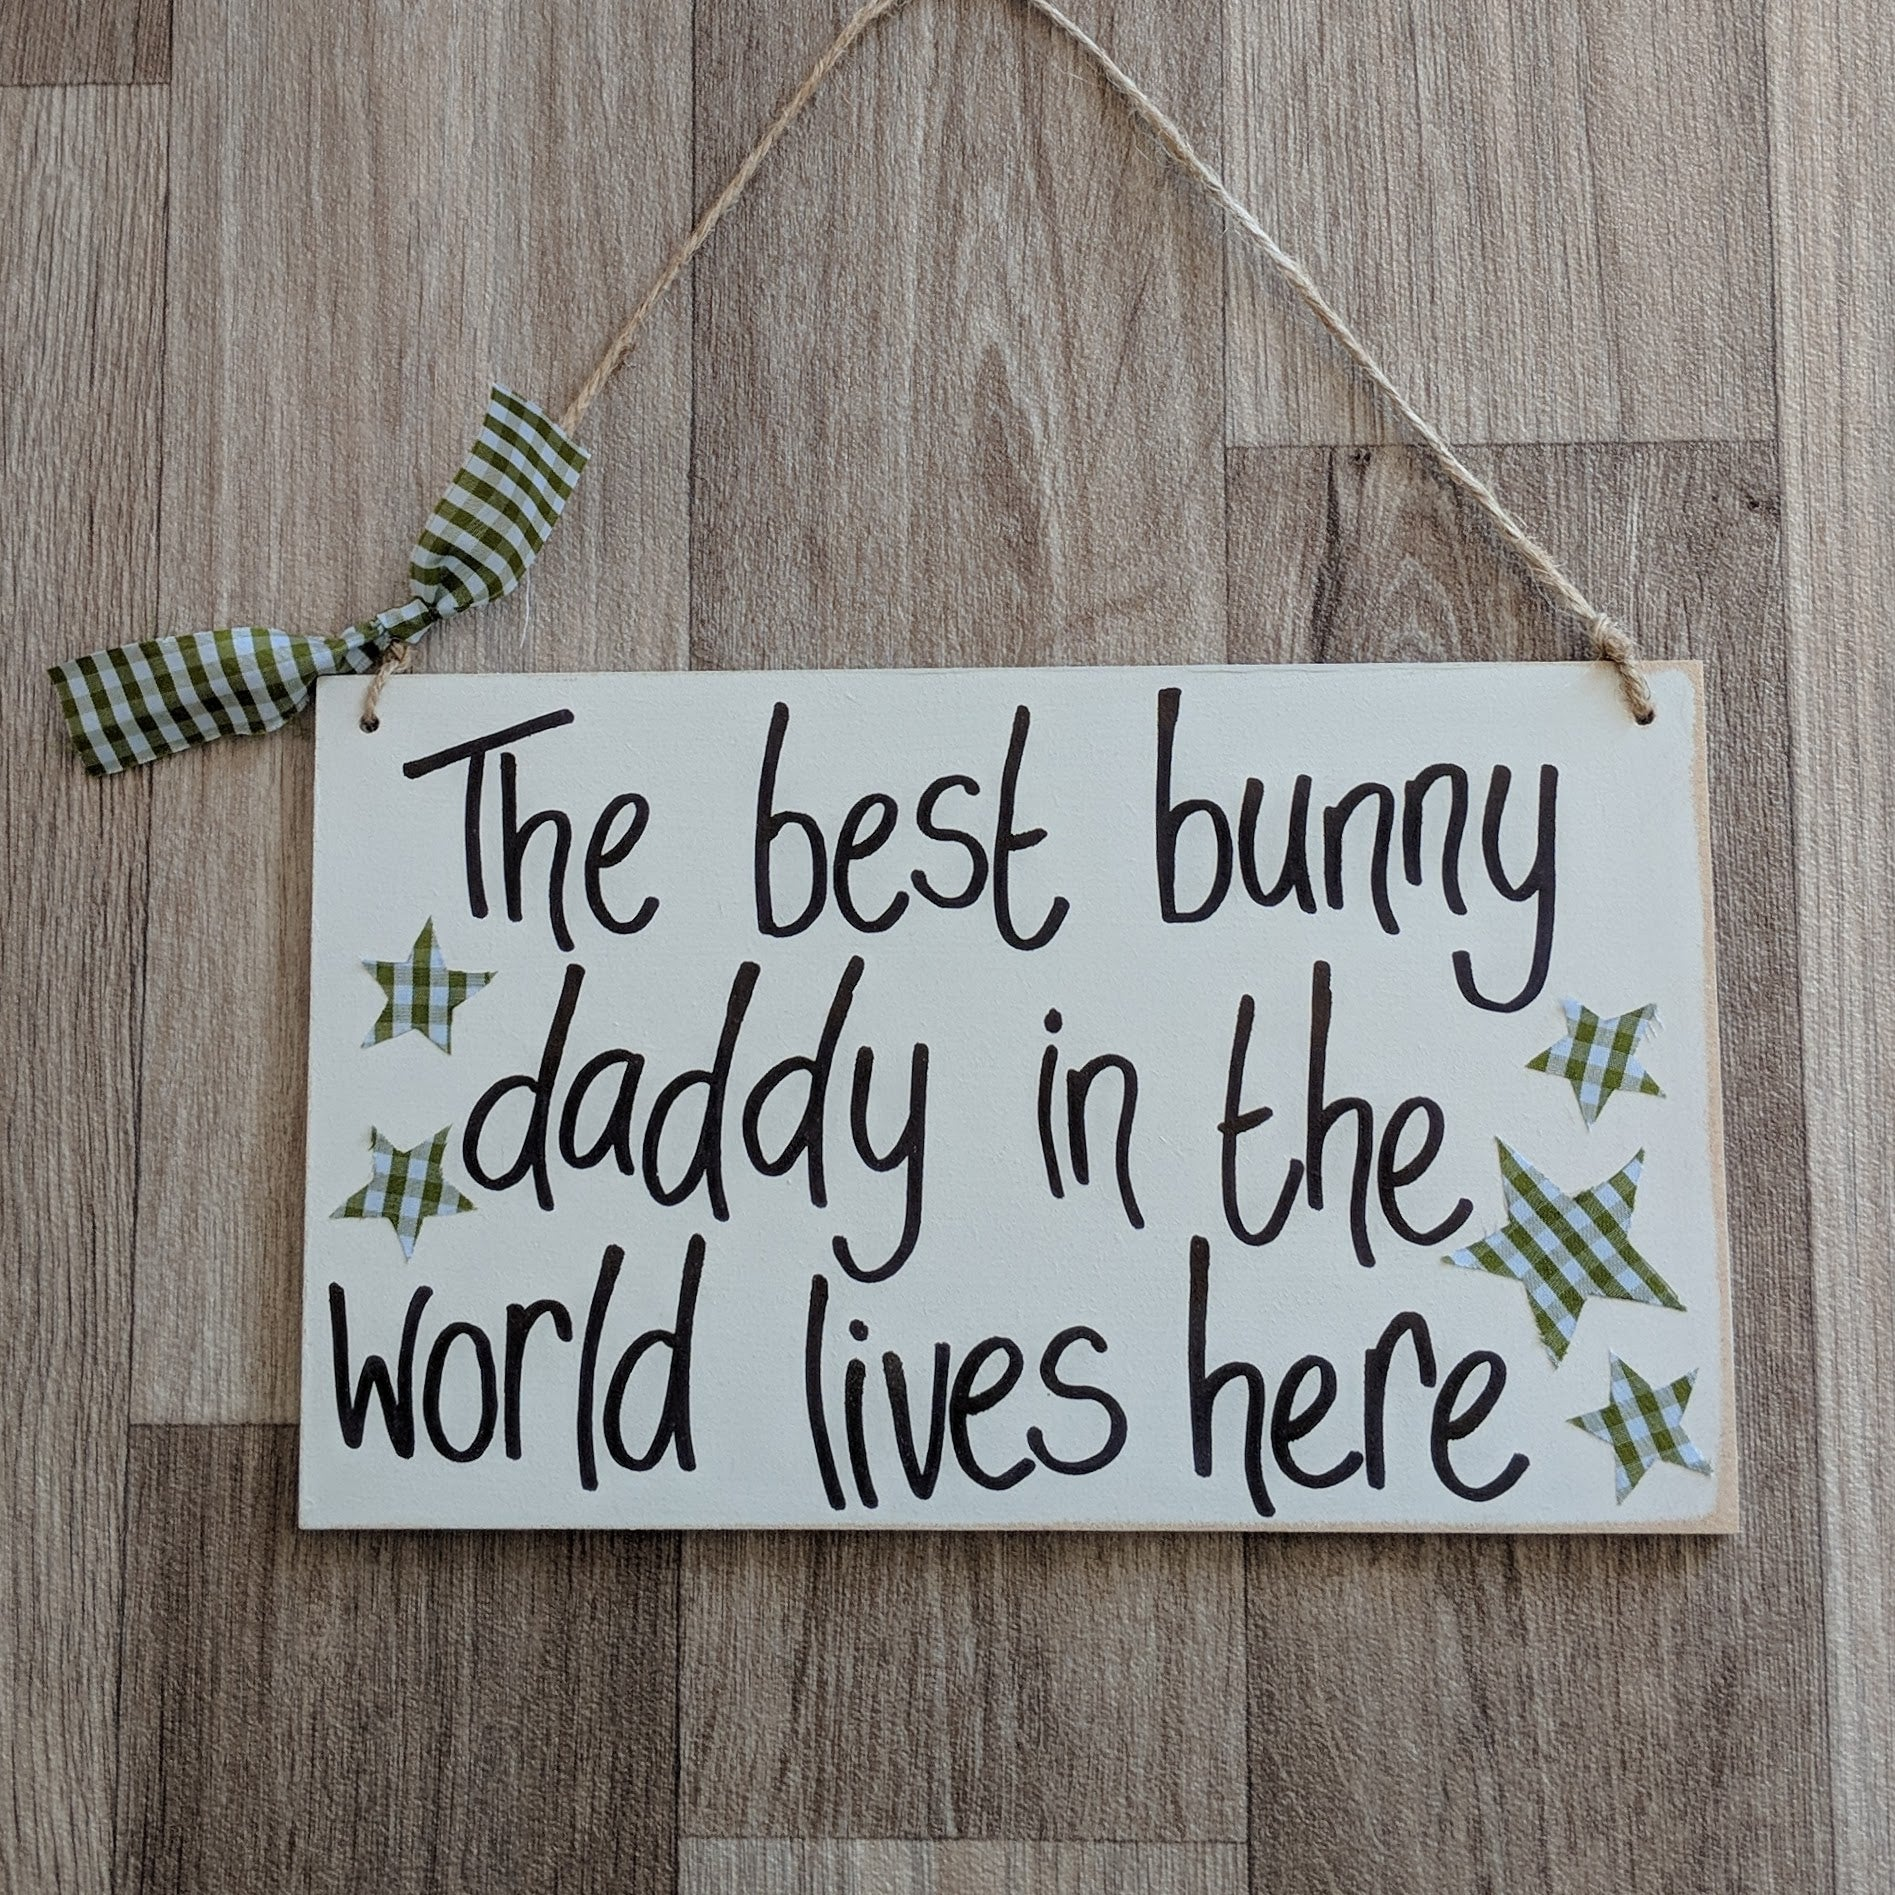 Wooden Sign [The best bunny daddy in the world lives here] | Everything Bunny Rabbit - Everything Bunny Rabbit